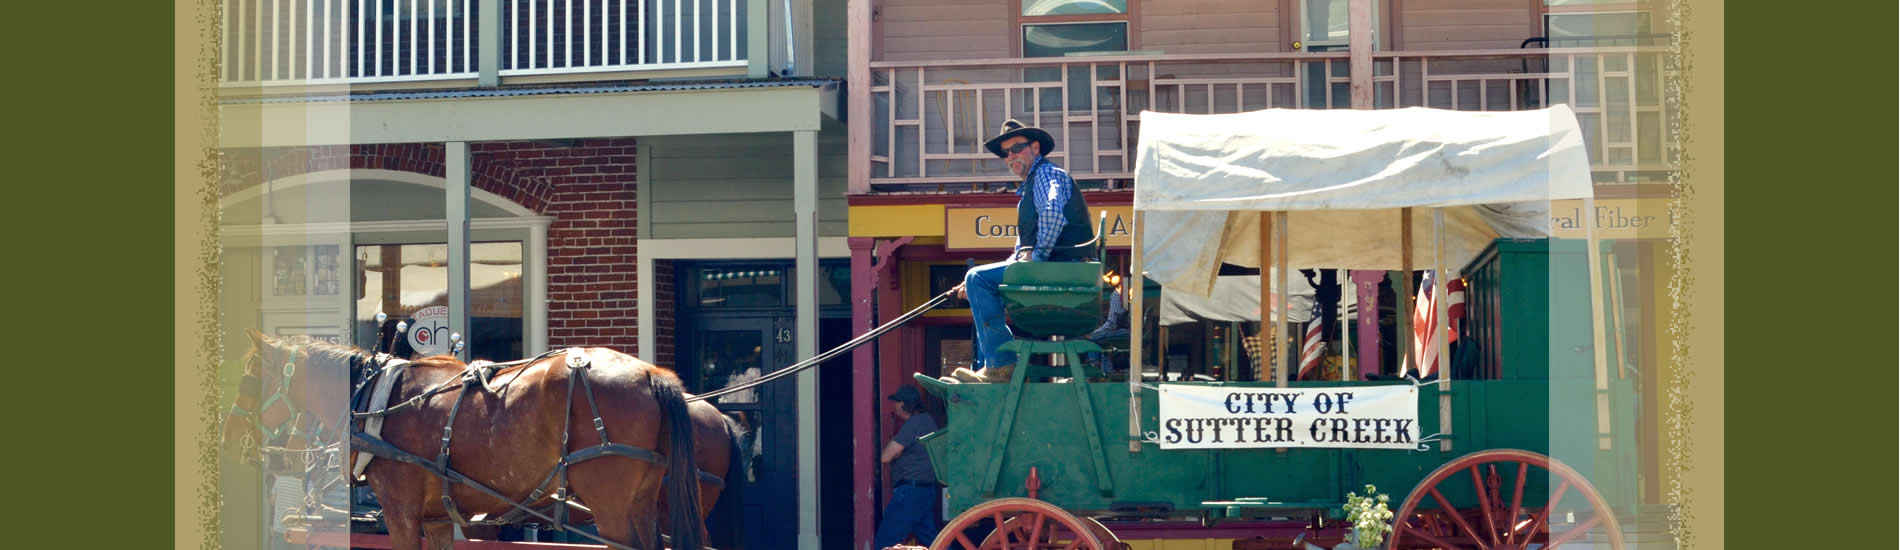 city of sutter creek wagon train